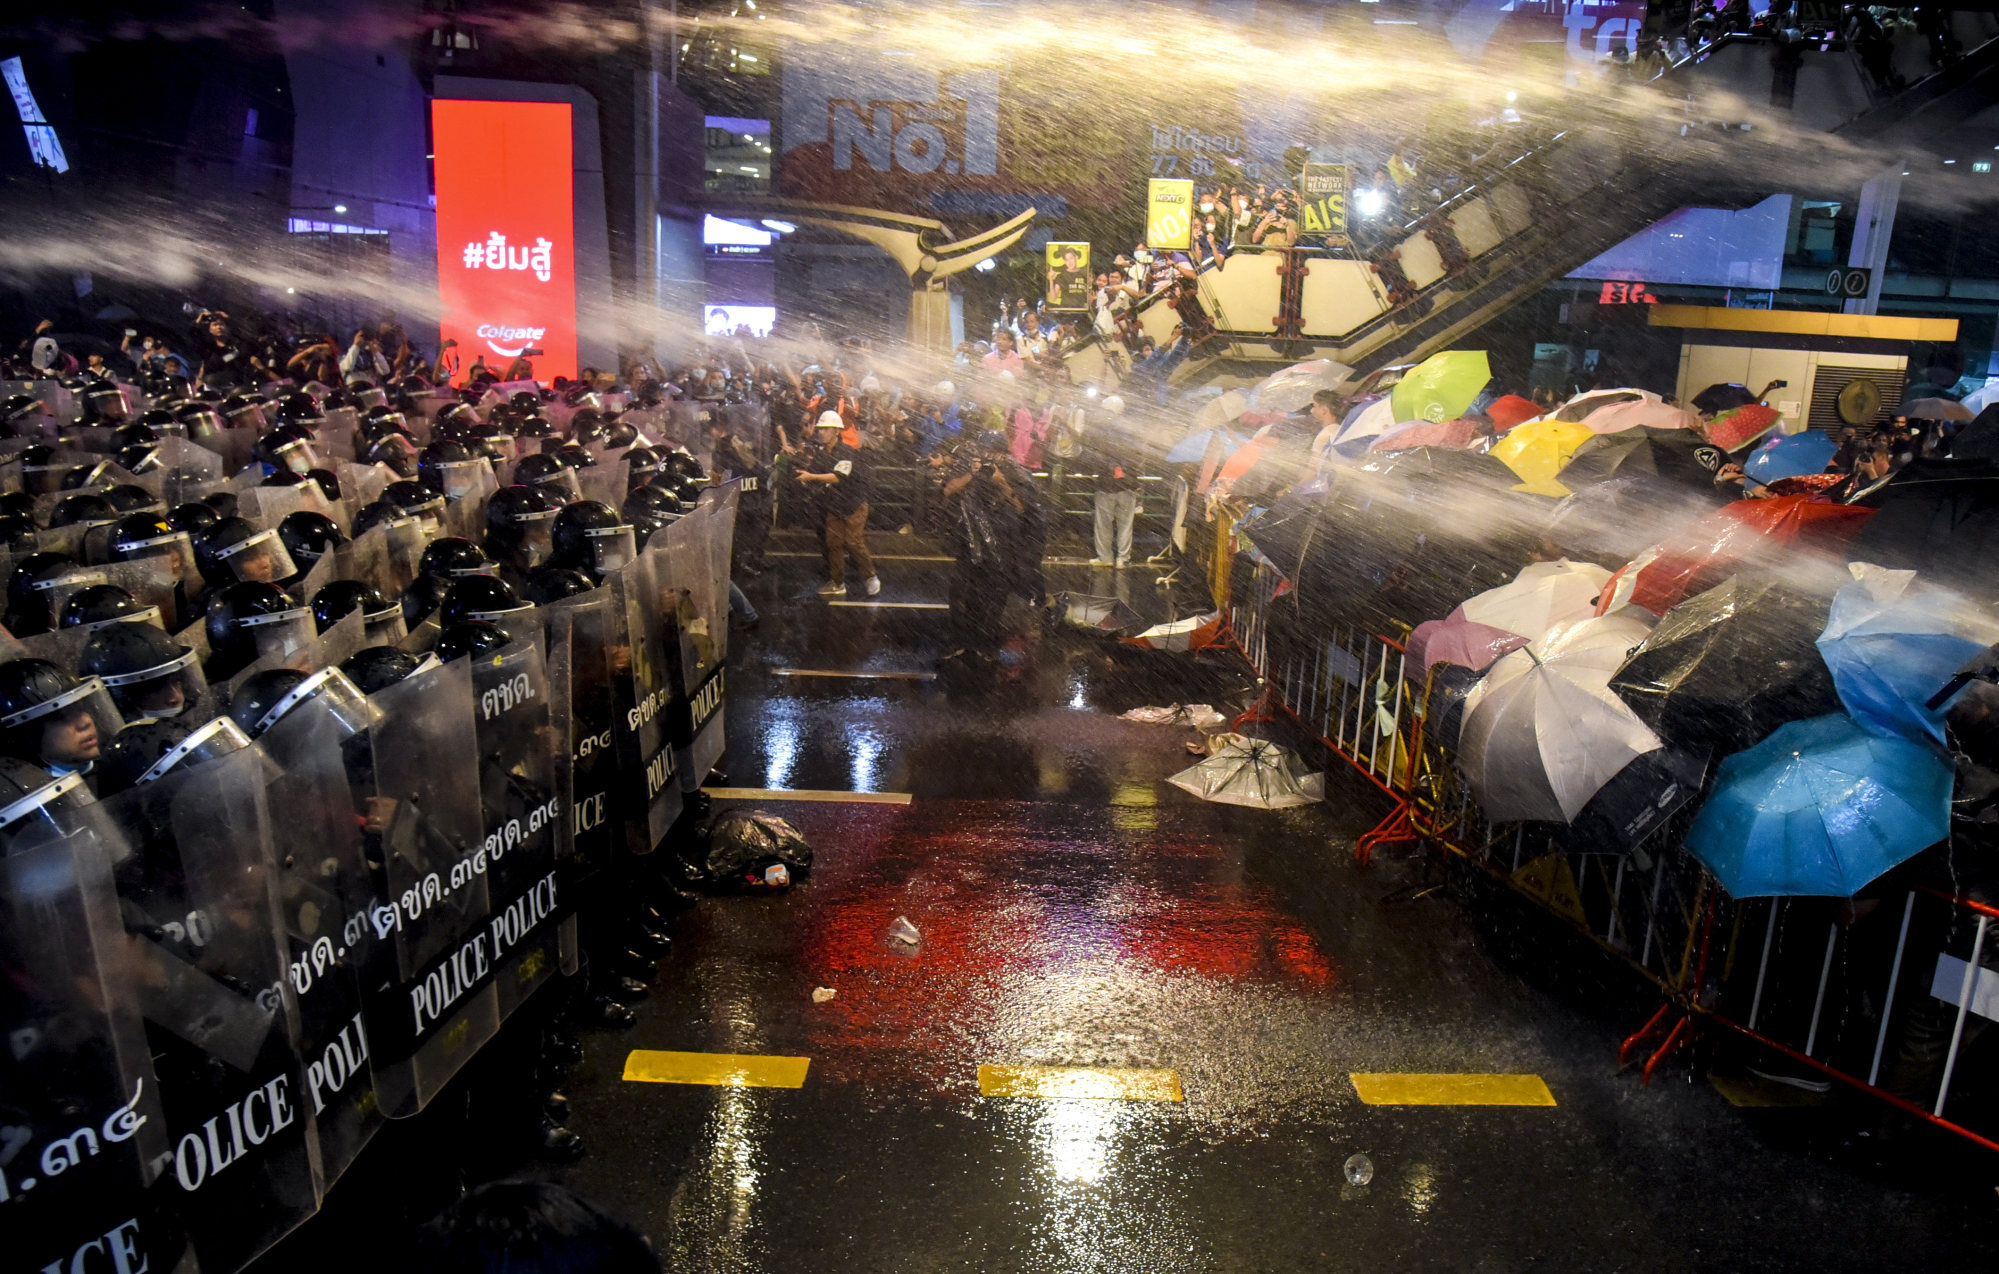 Protesters cover themselves as riot police fire water cannons in Bangkok on October 16, 2020. Photo: ZUMA Wire/dpa